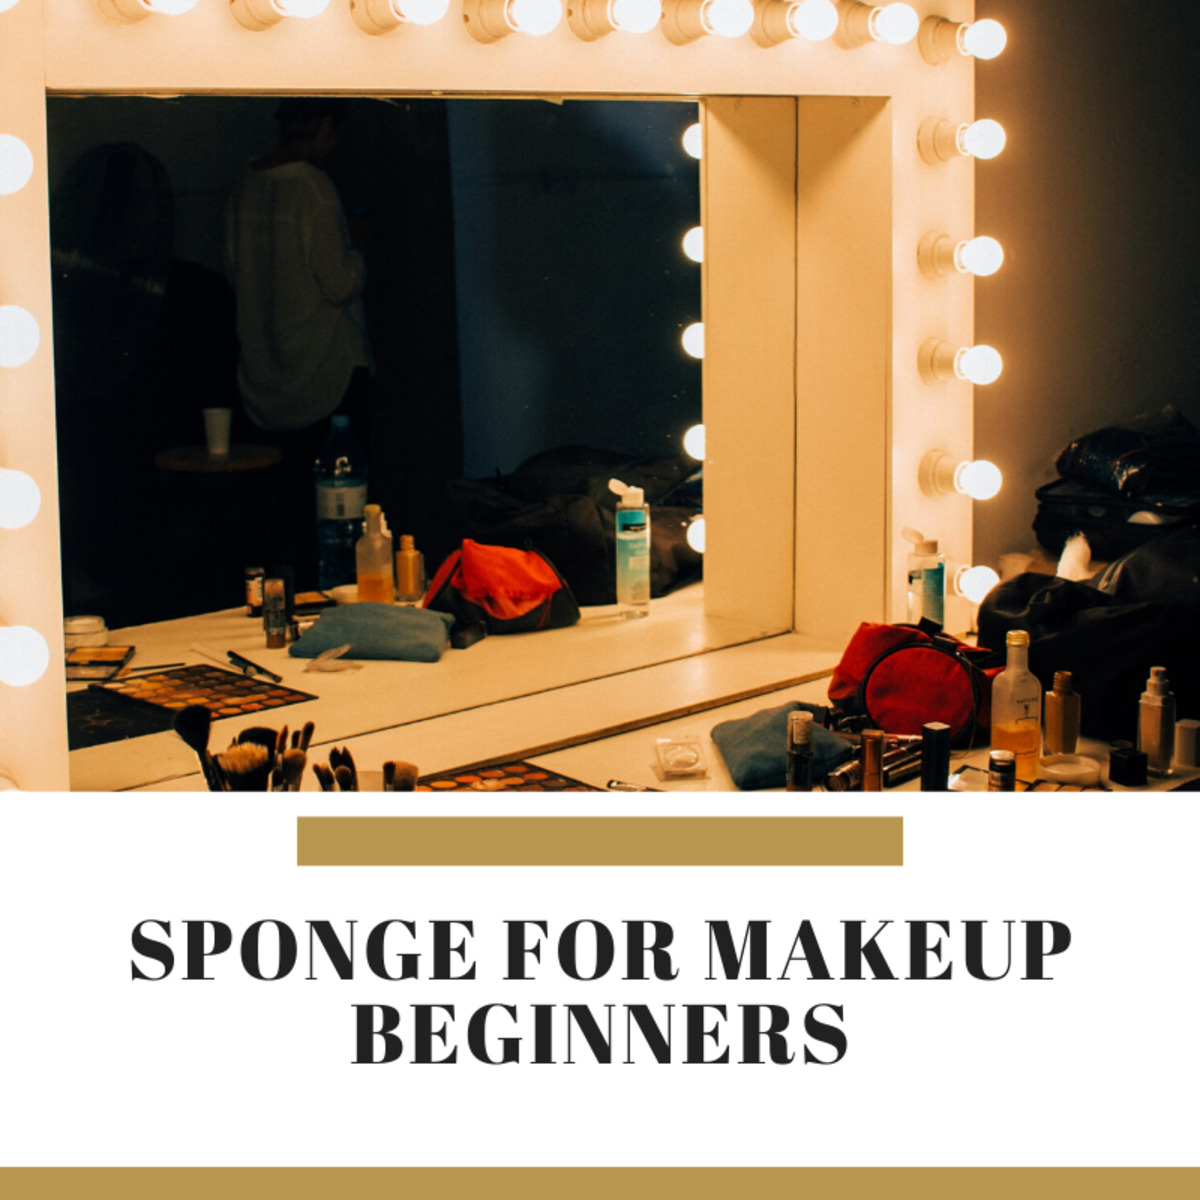 Choosing a Beauty Blender Sponge for Makeup Beginners